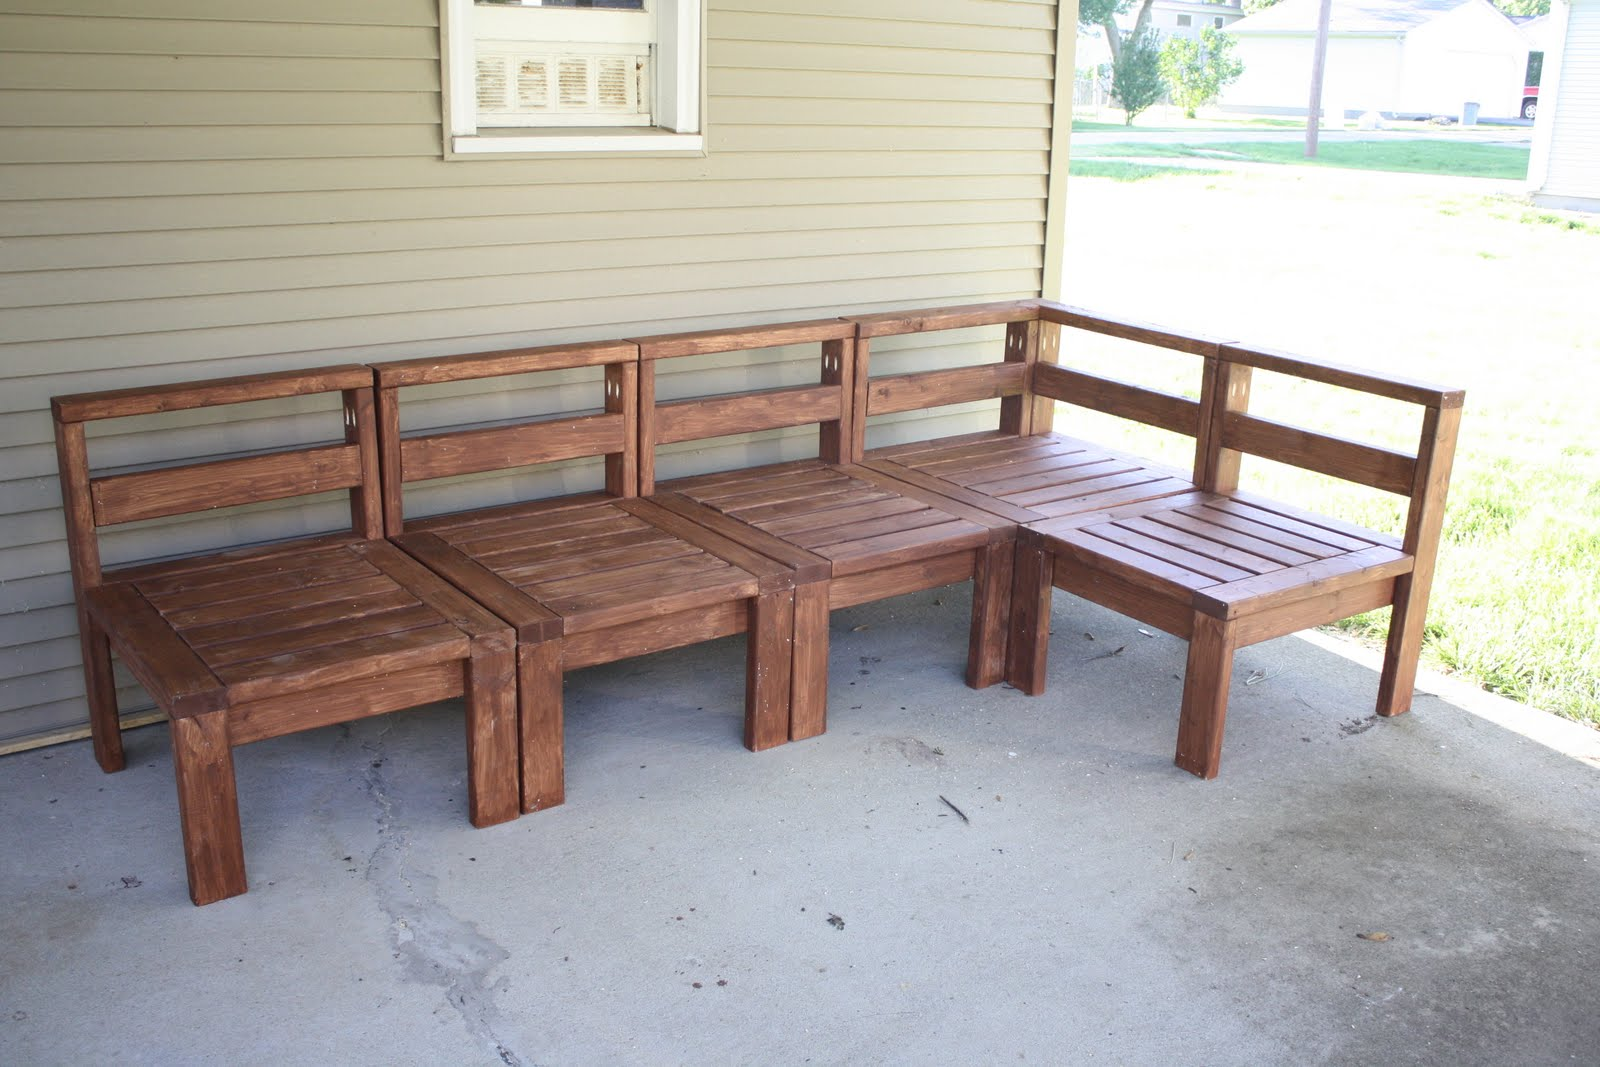 Pdfwoodworkplans free 2x4 furniture plans plans free pdf for Patio plans free